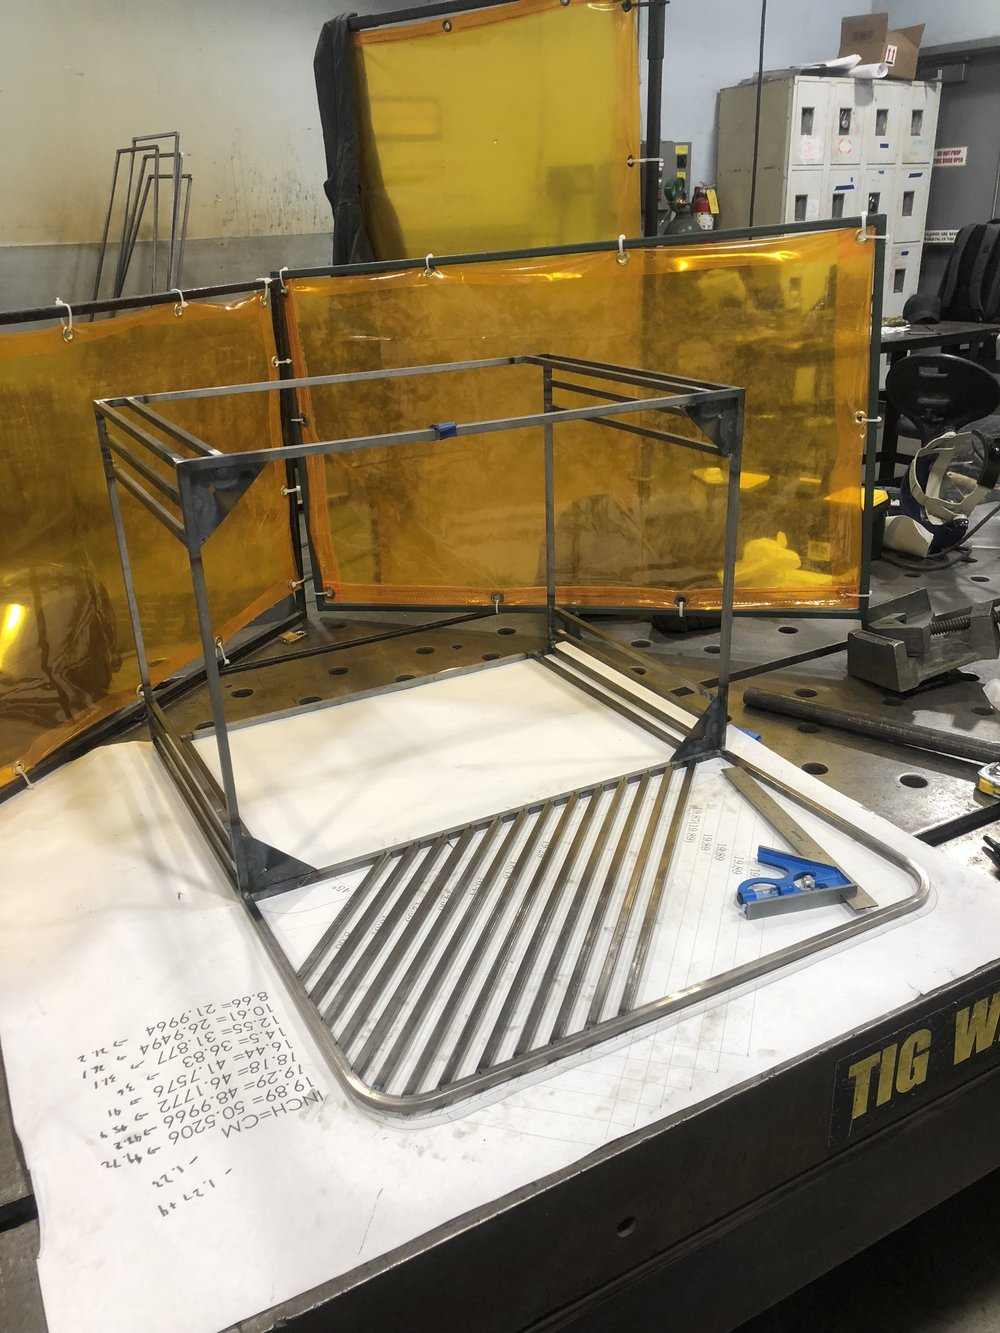 5. After constructing the 3D document, it was printed in full scale to aid the process of TIG welding the seat back detail. After that, all the welds were grinded flush to the surface using an angle grinder.